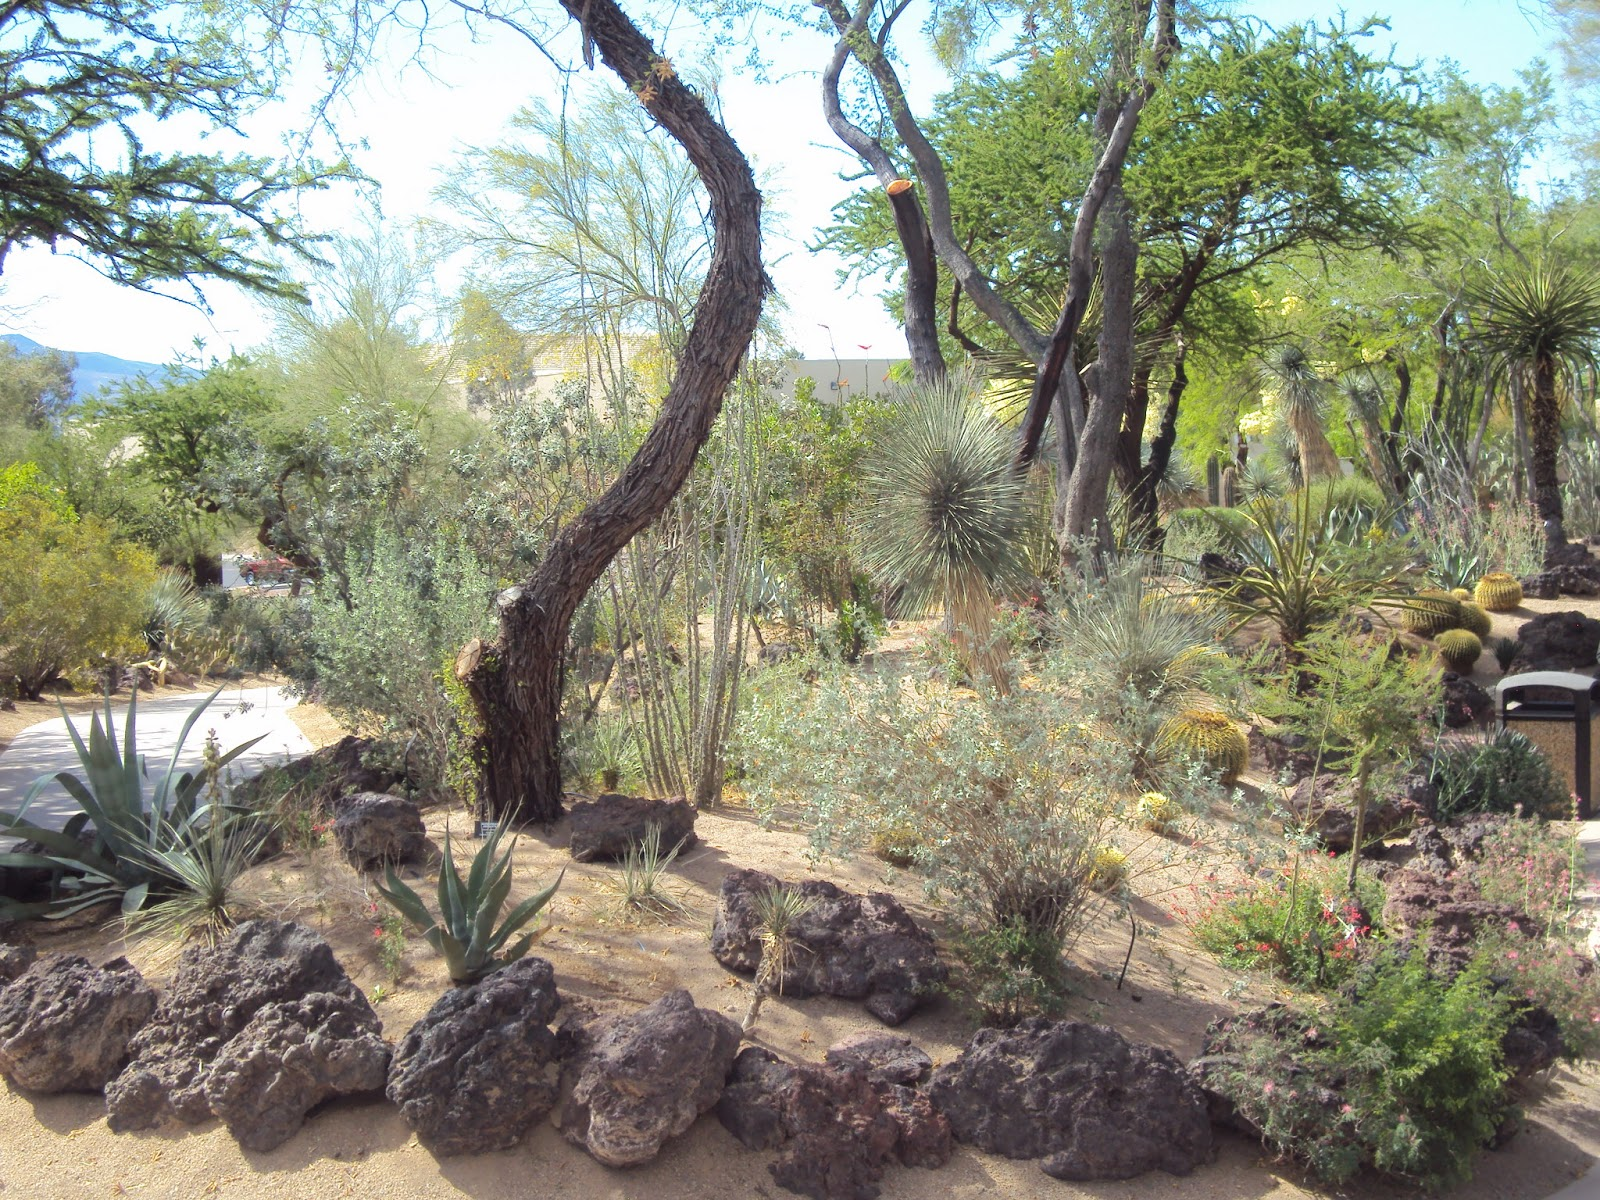 We Then Headed To The Unique, Three Acre Botanical Cactus Garden. It  Features More Than 300 Types Of Cactus Including Spotted Aloe, Agave  Plants, ...